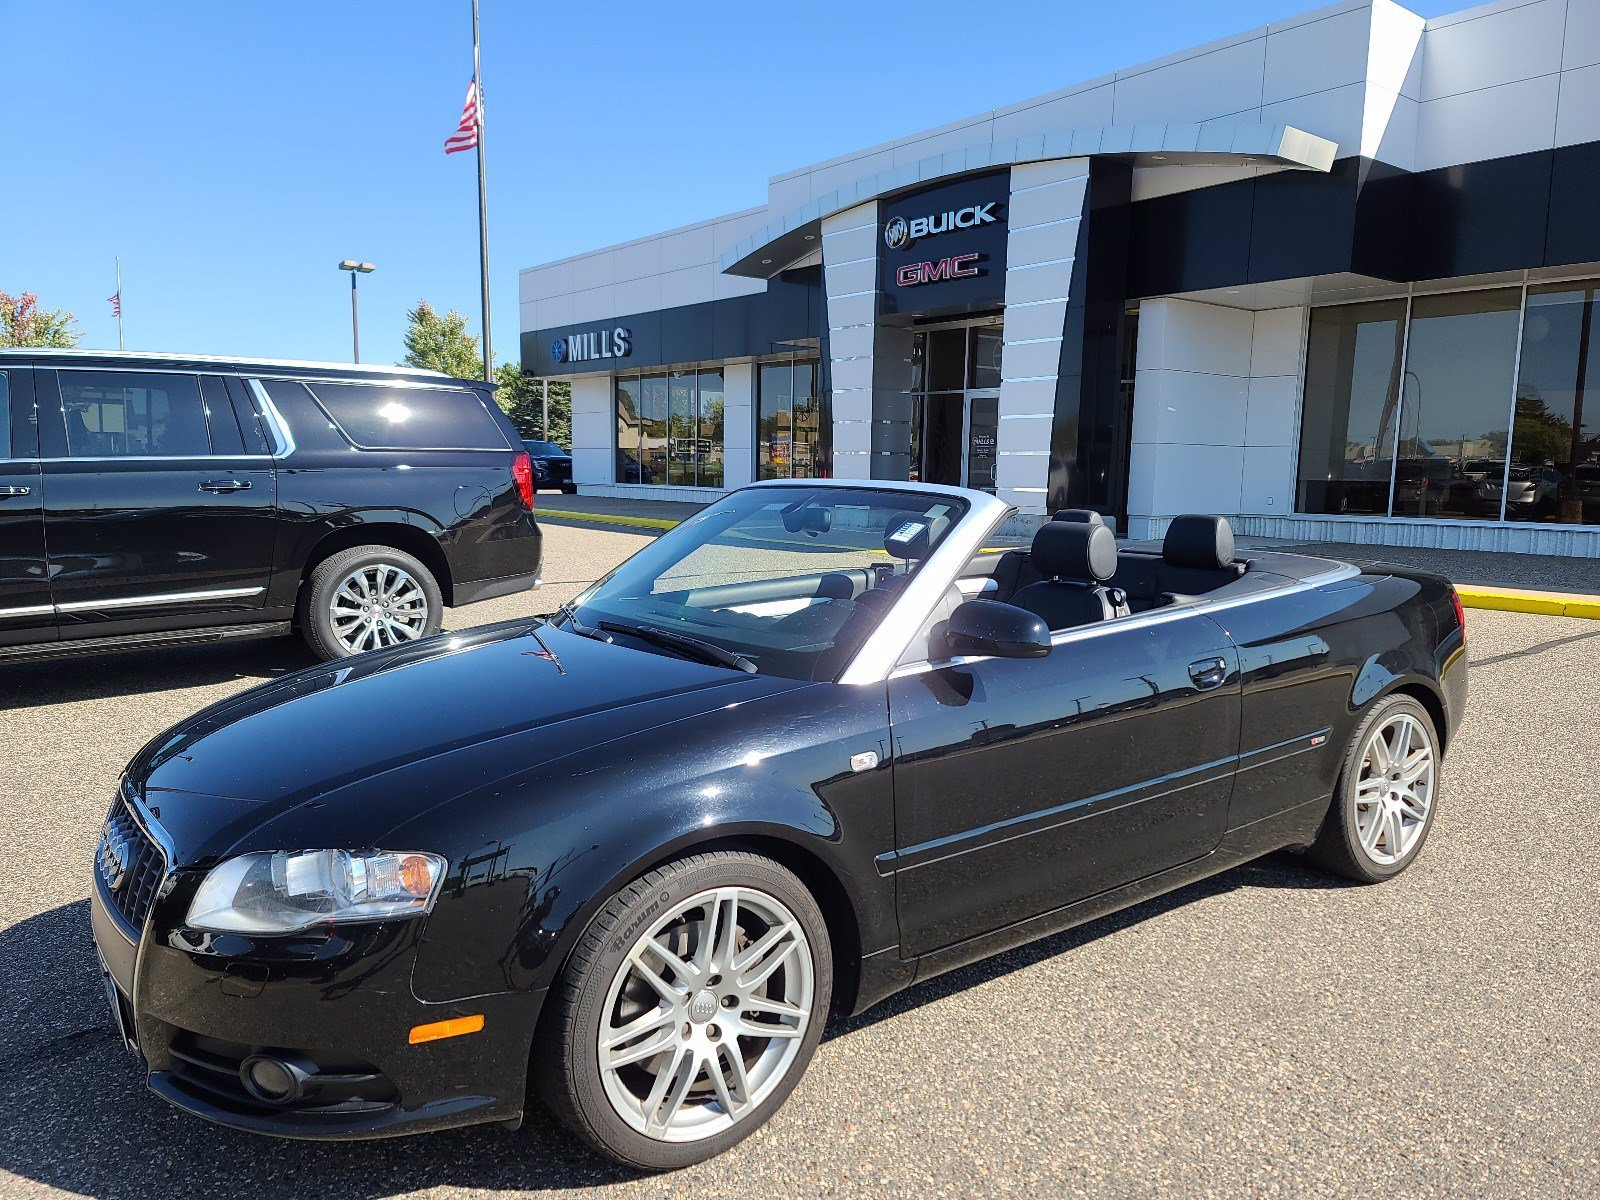 Used 2009 Audi A4  with VIN WAUAF48H29K007888 for sale in Baxter, Minnesota